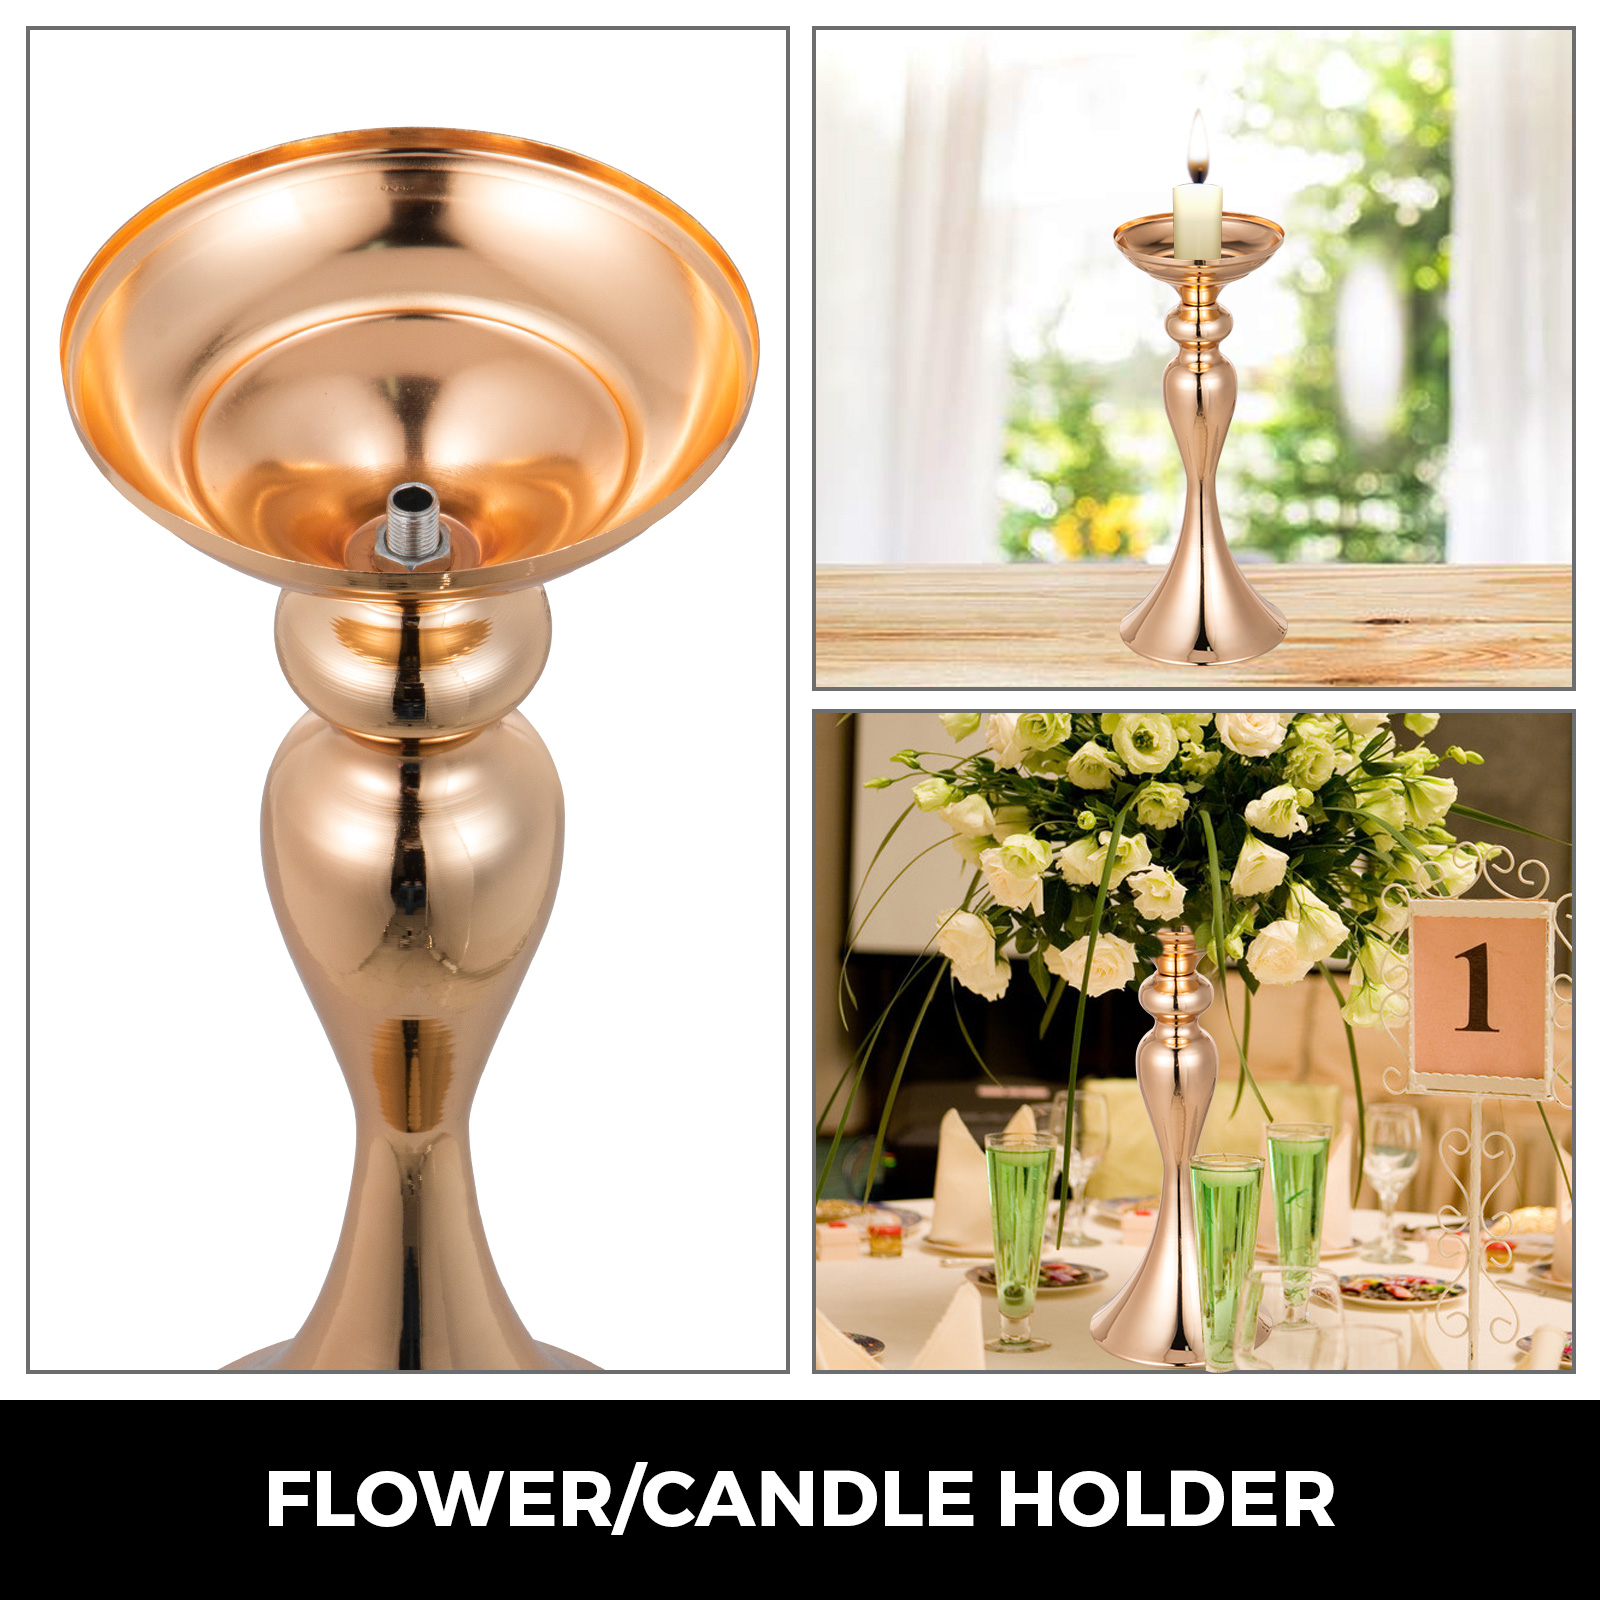 Flower-Rack-for-Wedding-Metal-Candle-Stand-4-11pcs-Centerpiece-Flower-Vase thumbnail 183